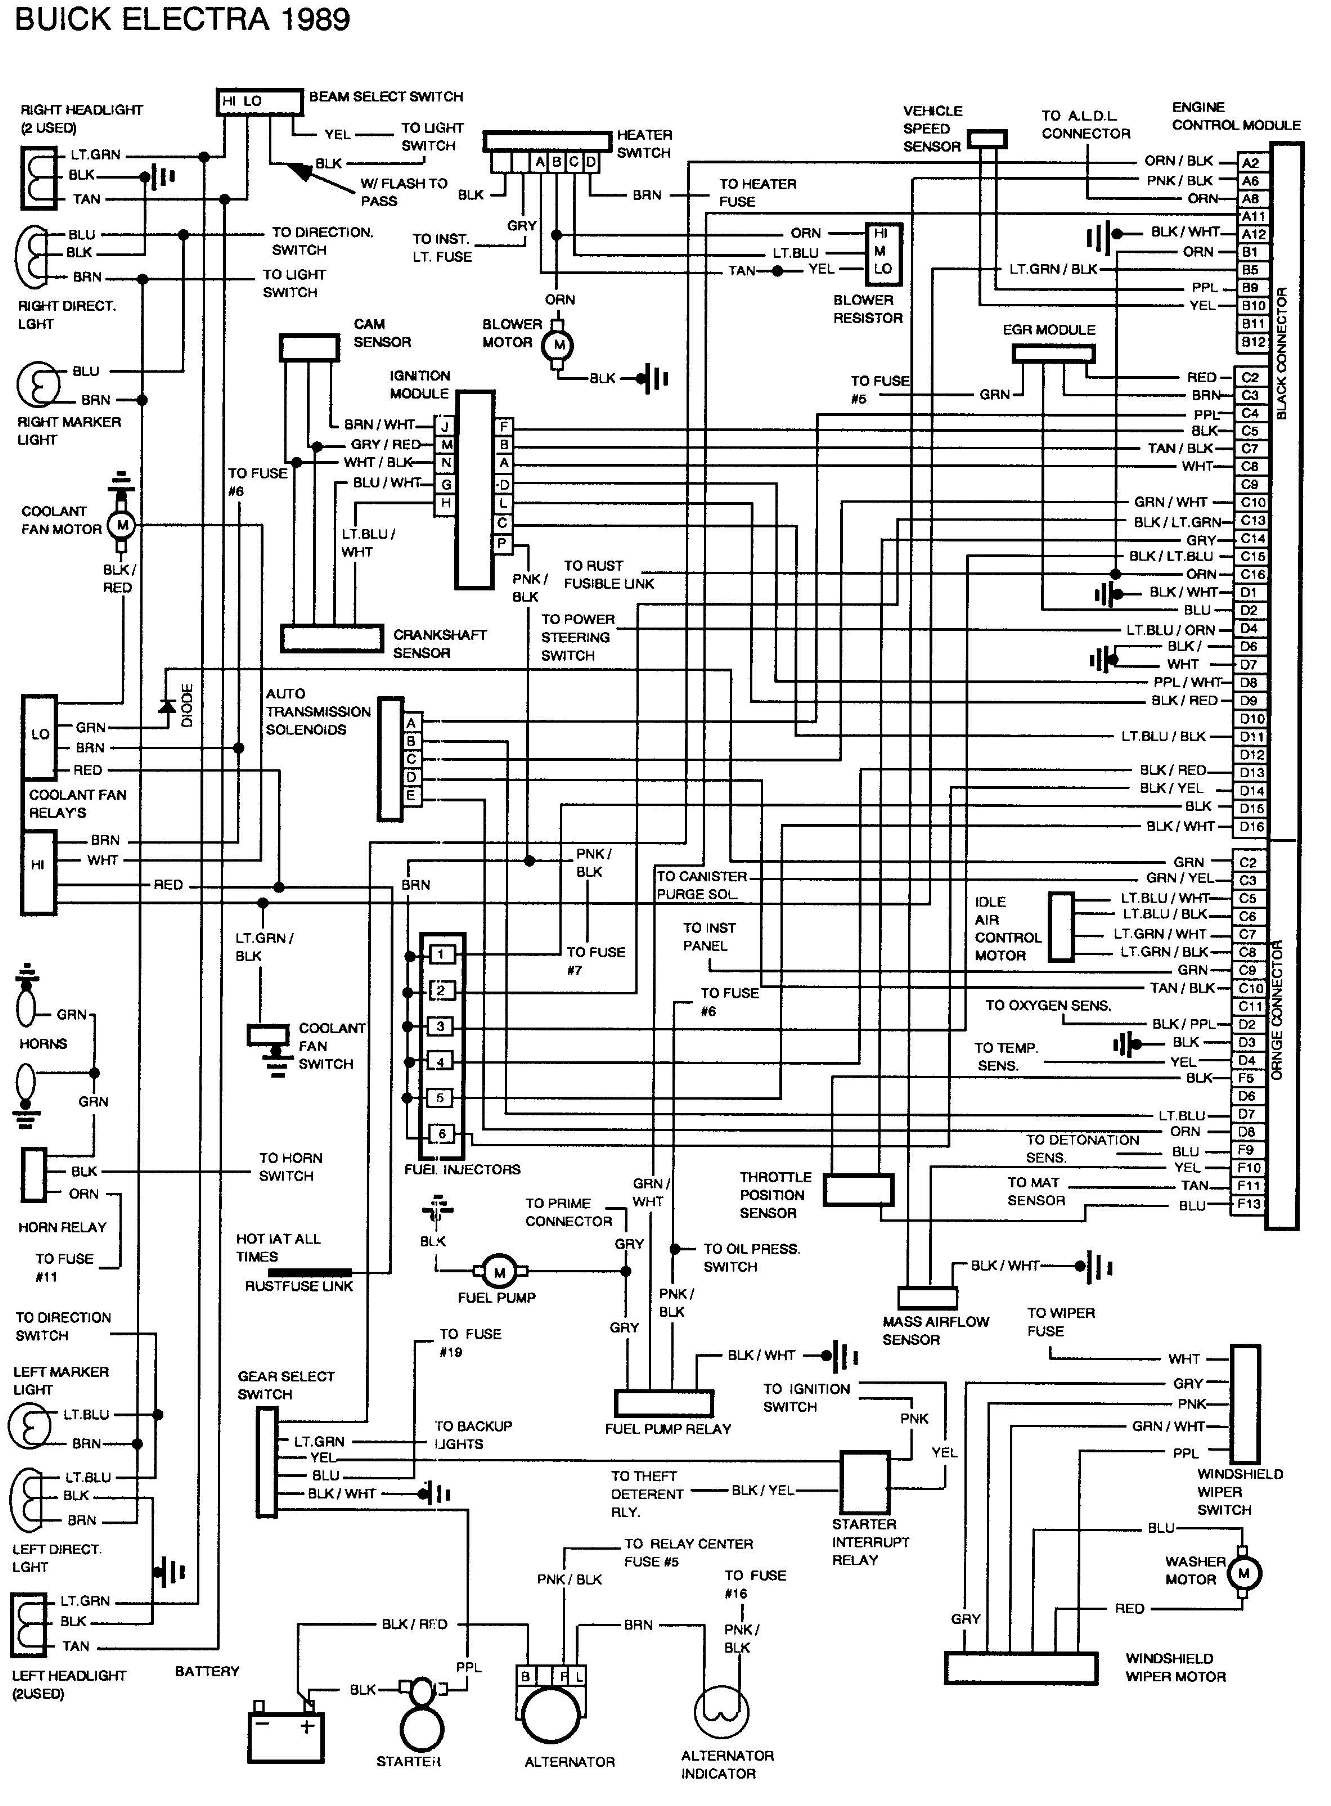 renault trafic engine diagram my wiring diagram rh detoxicrecenze com renault trafic wiring diagram download Inside Renault Trafic